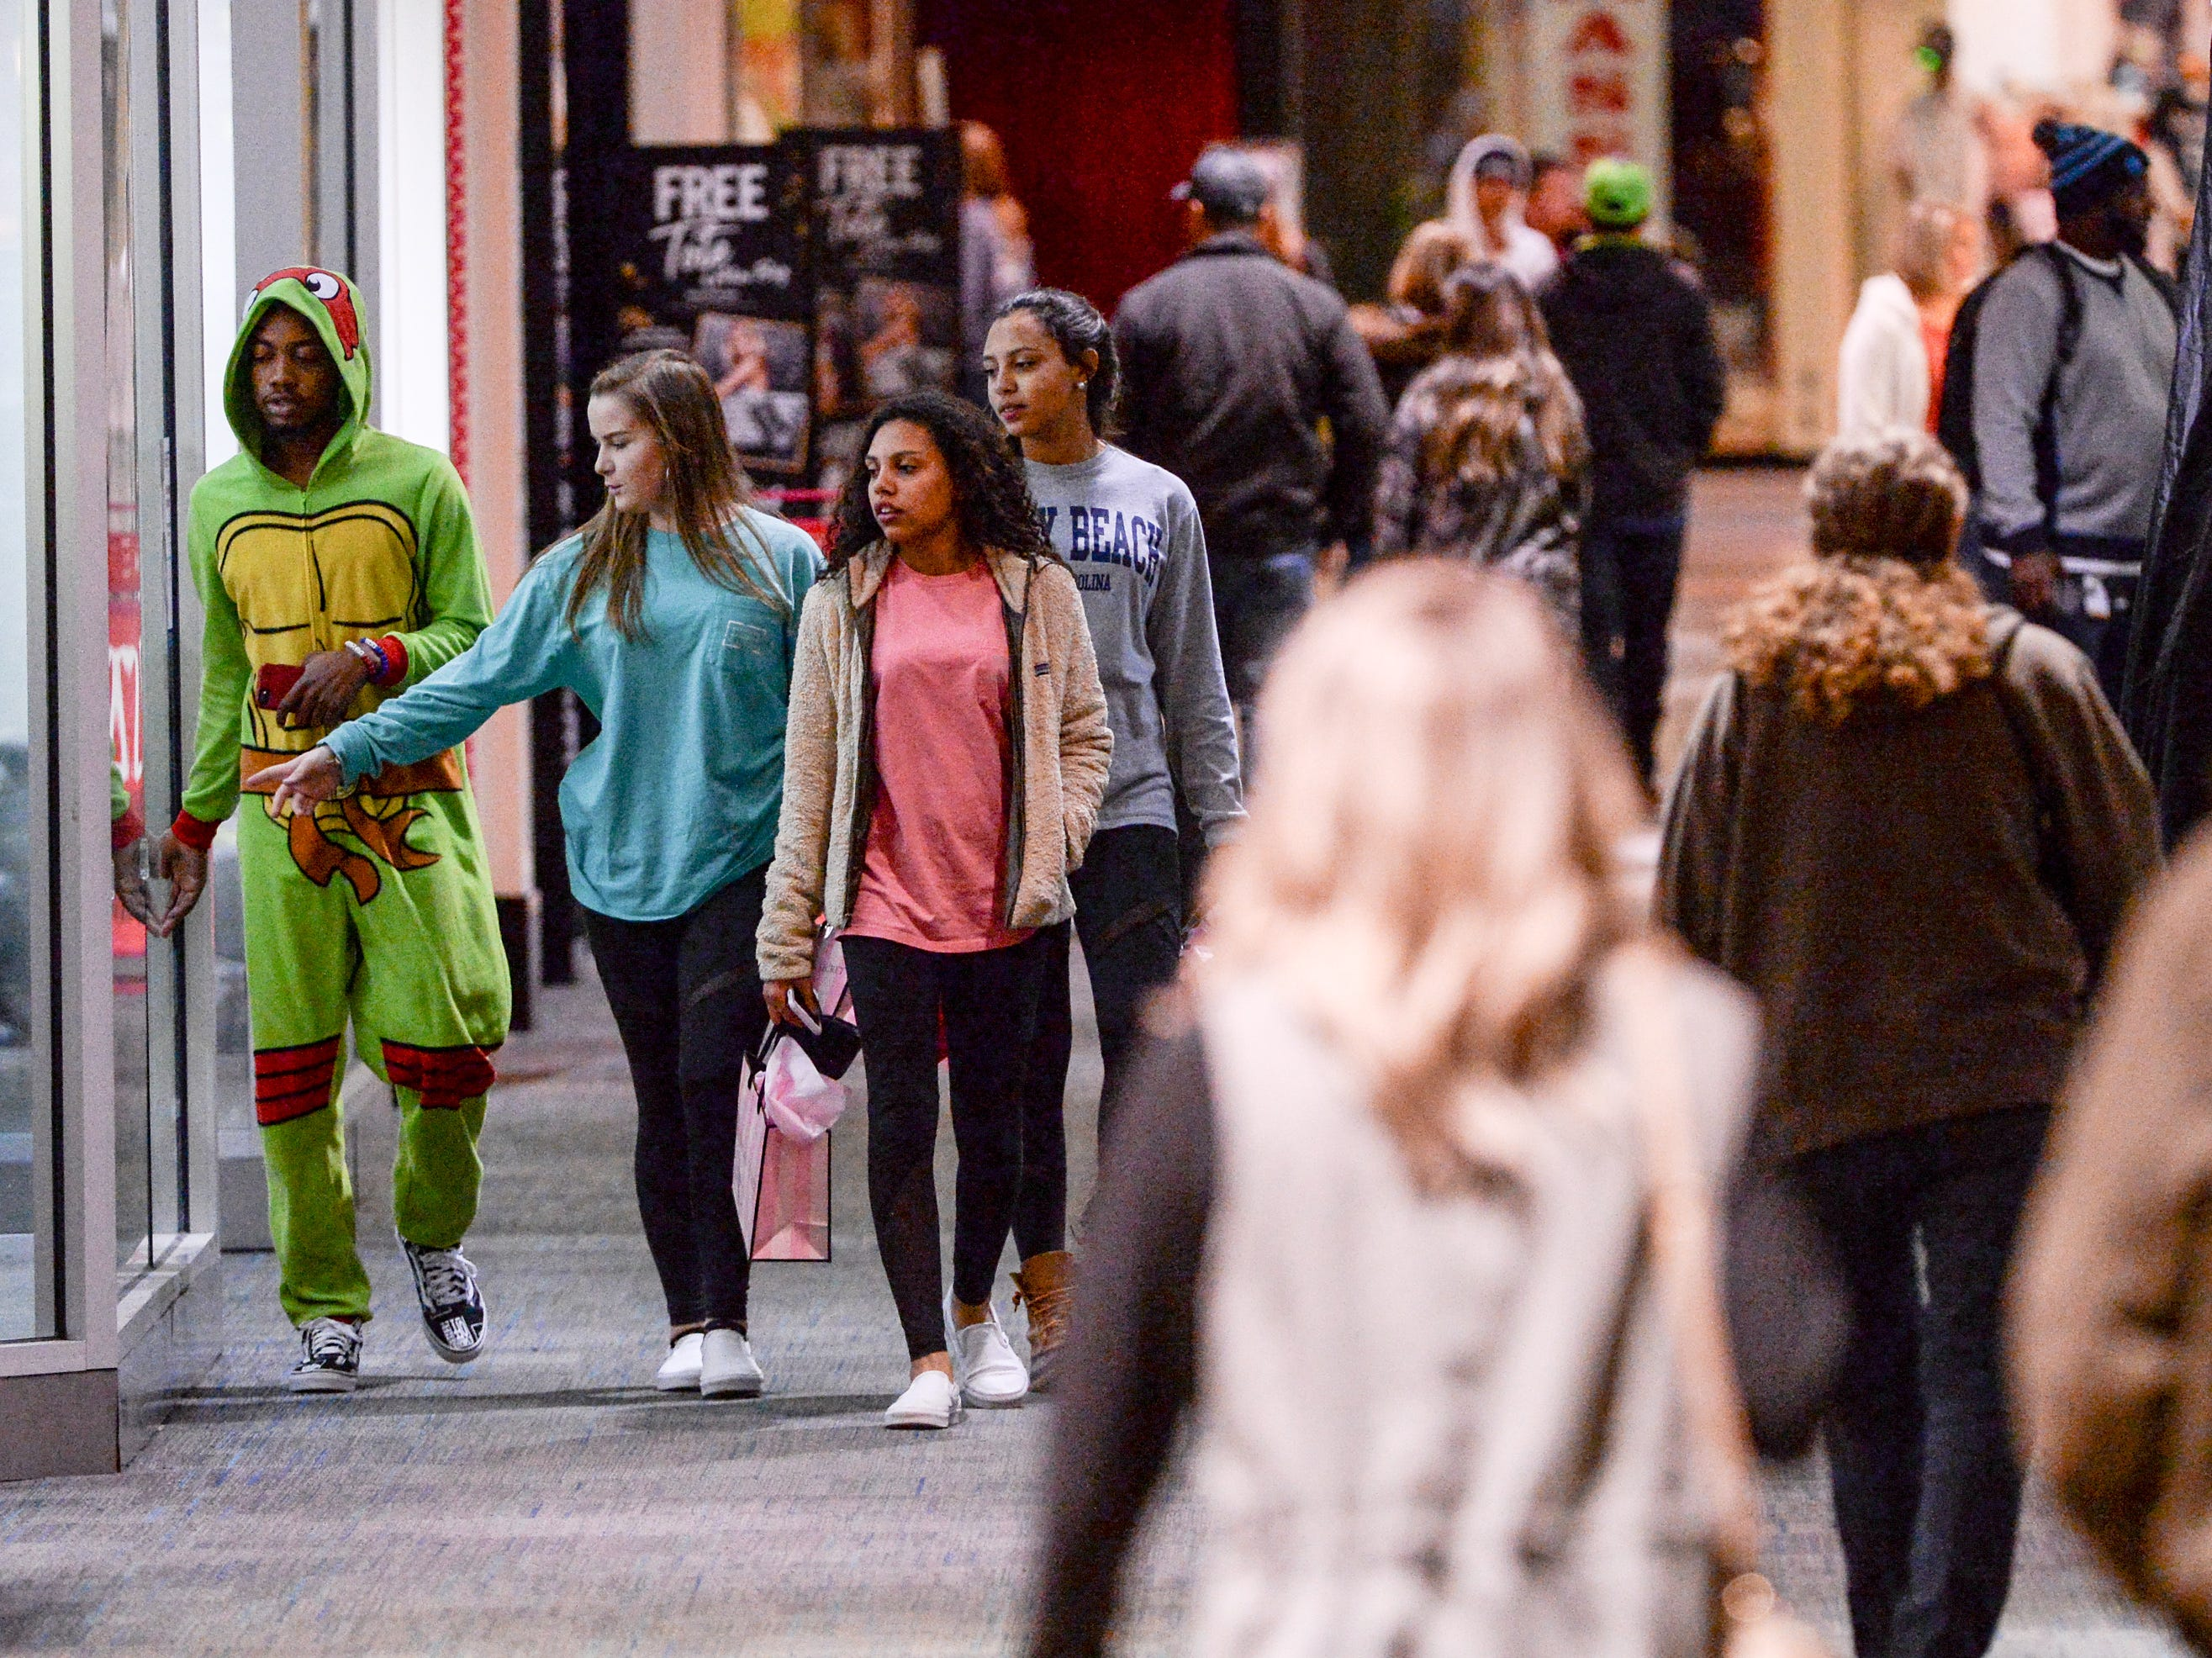 Customers walk by different stores in the Anderson Mall during Black Friday sales in Anderson on Friday, November 23, 2018.